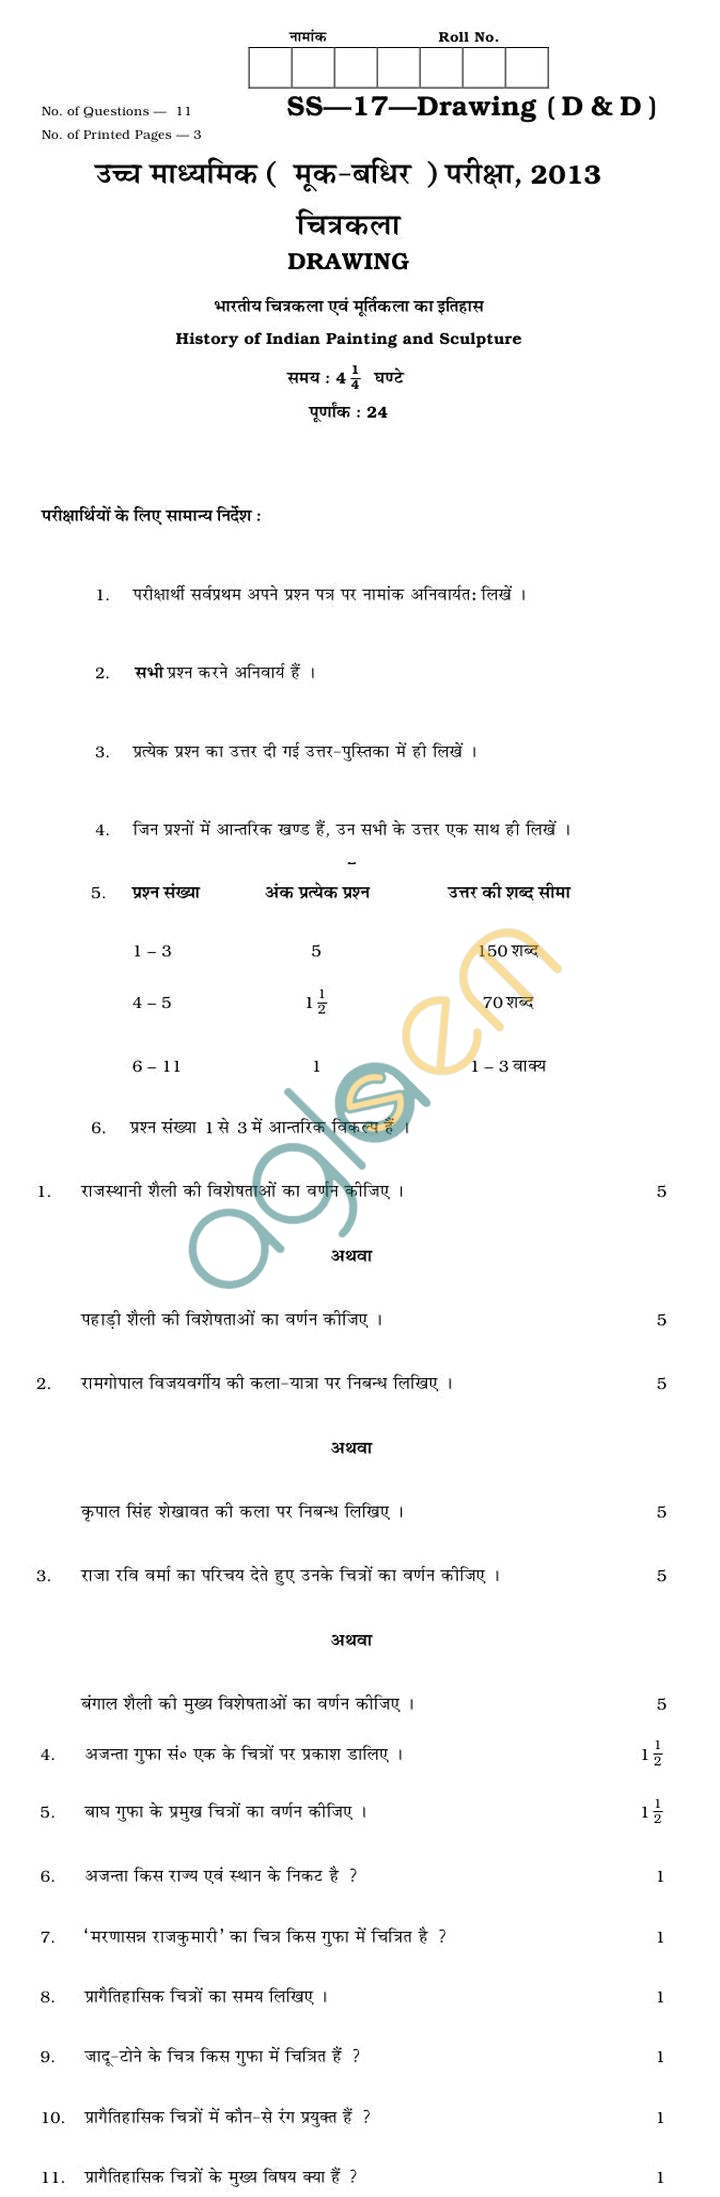 Rajasthan Board Sr. Secondary Drawing (DD) Question Paper 2013